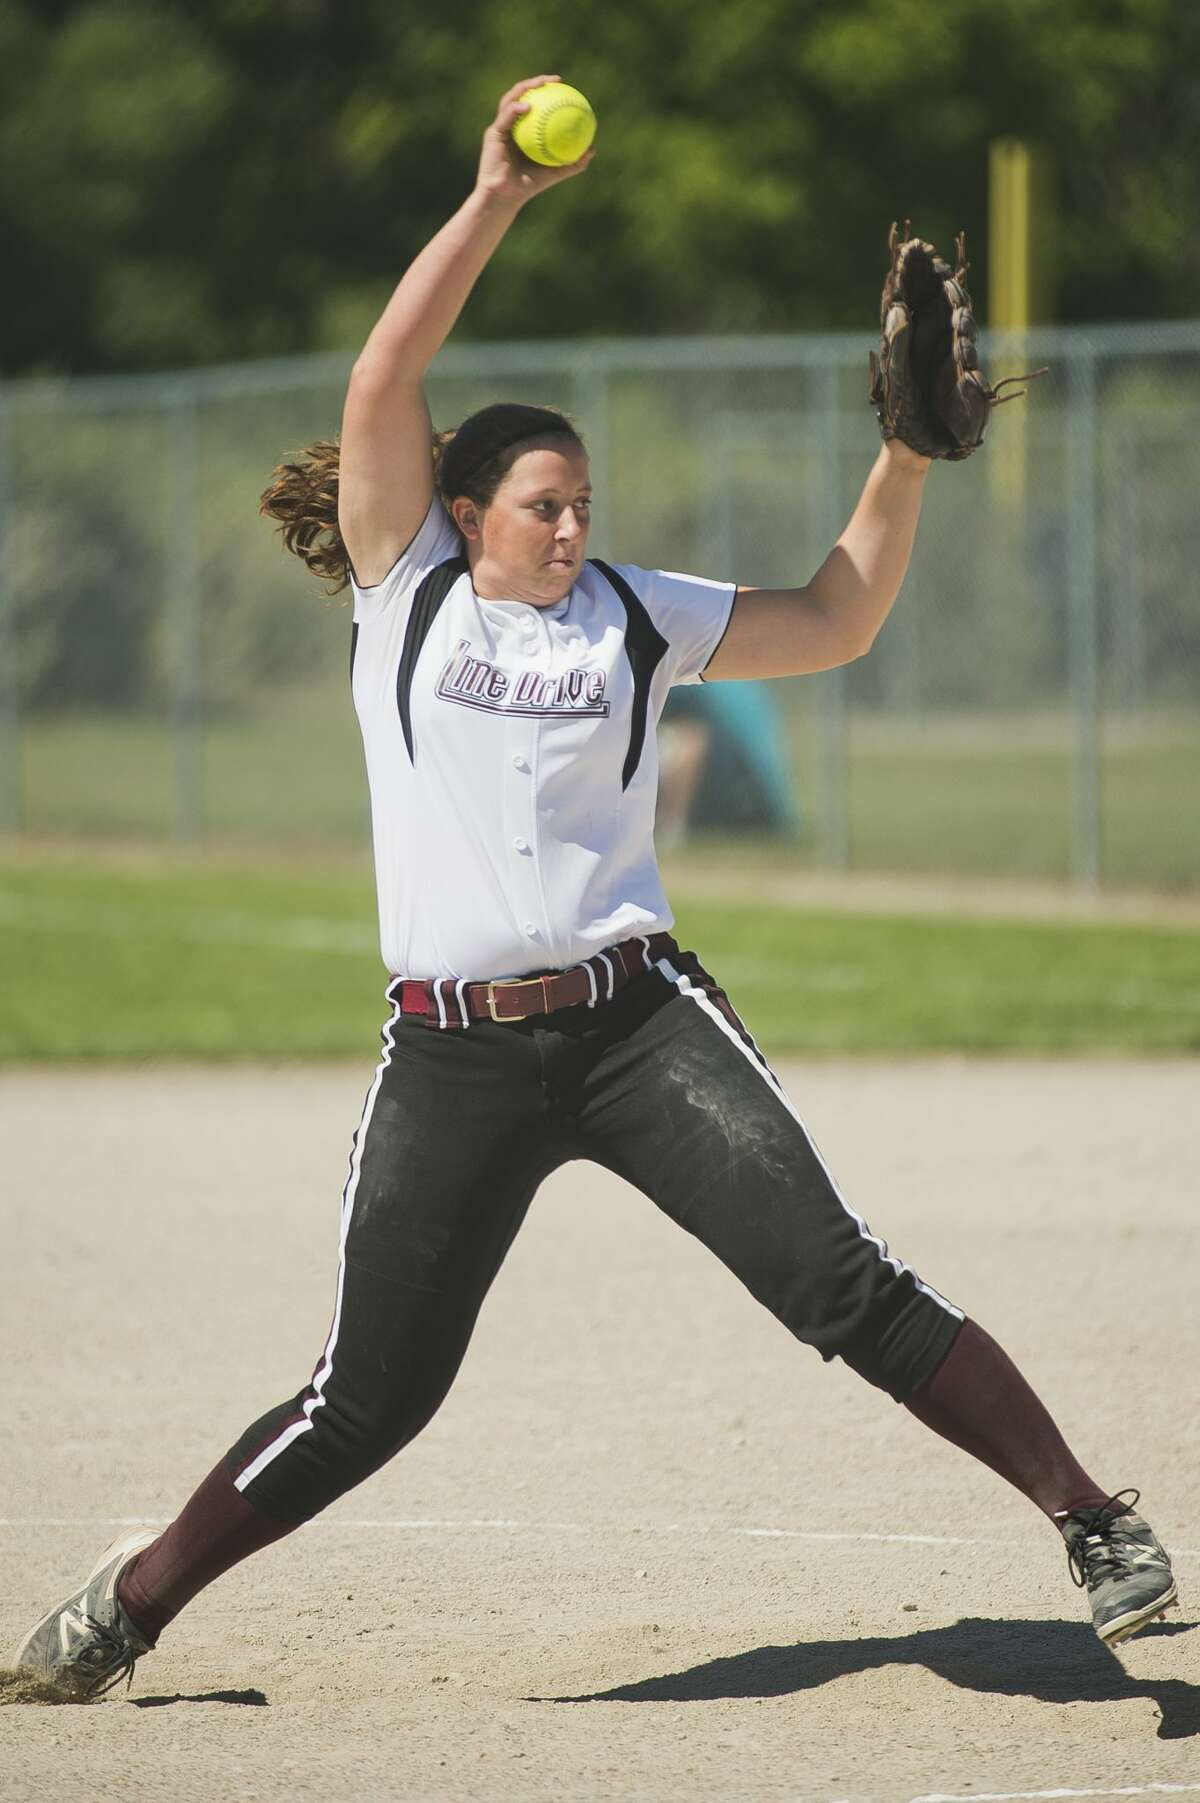 Midland Line Drive Express's Carrie Chamberlain delivers a pitch during a July 8, 2017 game against Midland Lady Explorers.